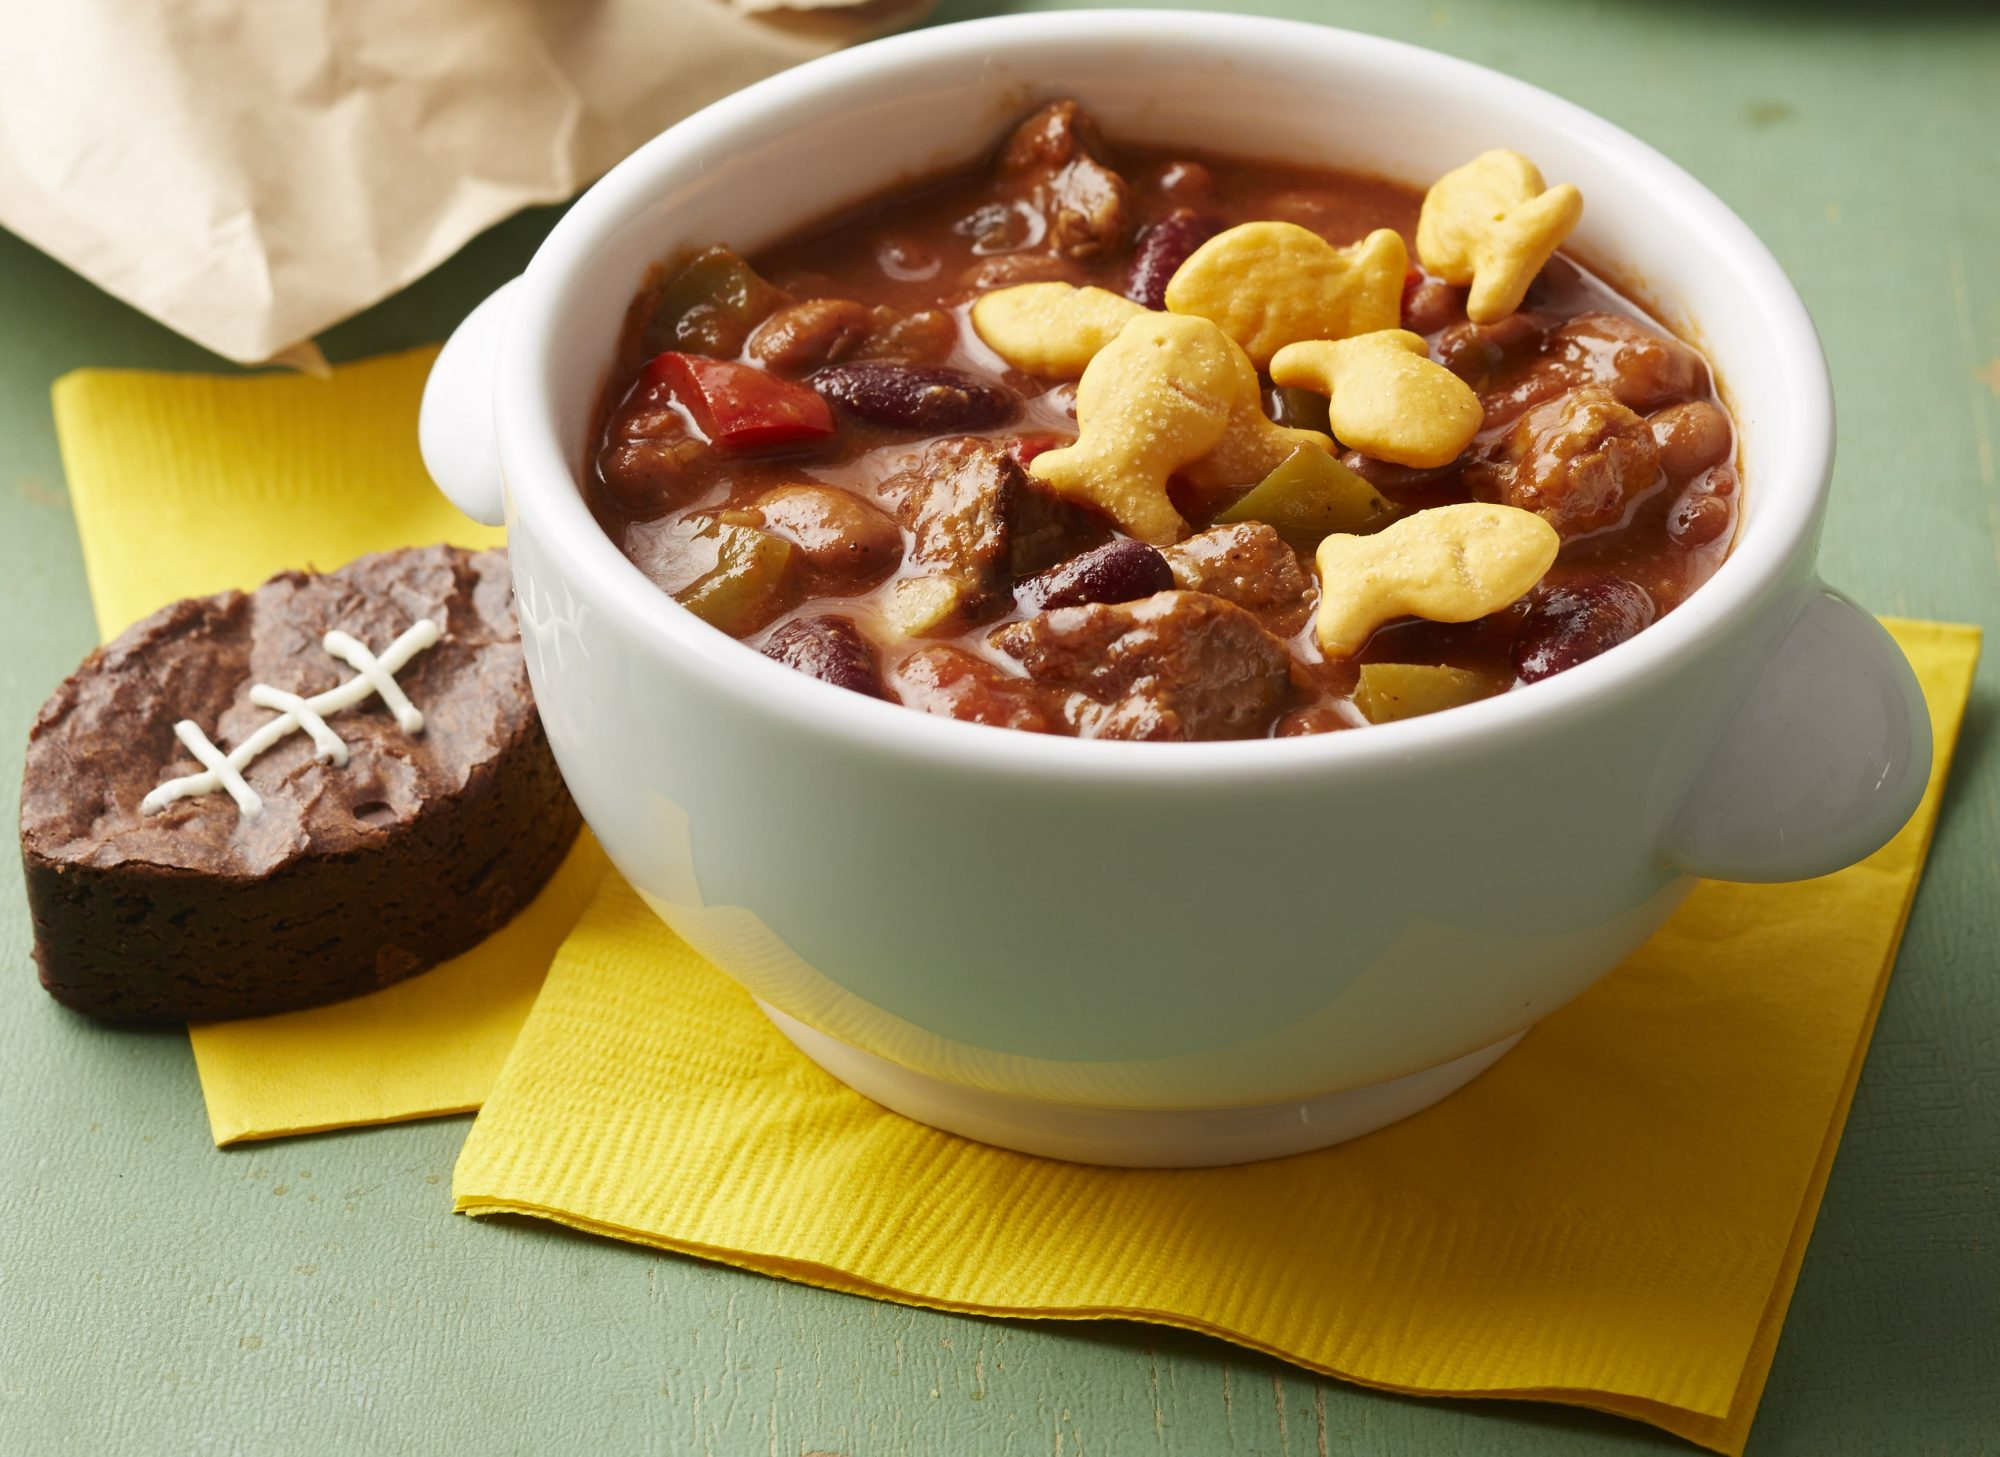 Chili with cubed meat and football shaped brownie